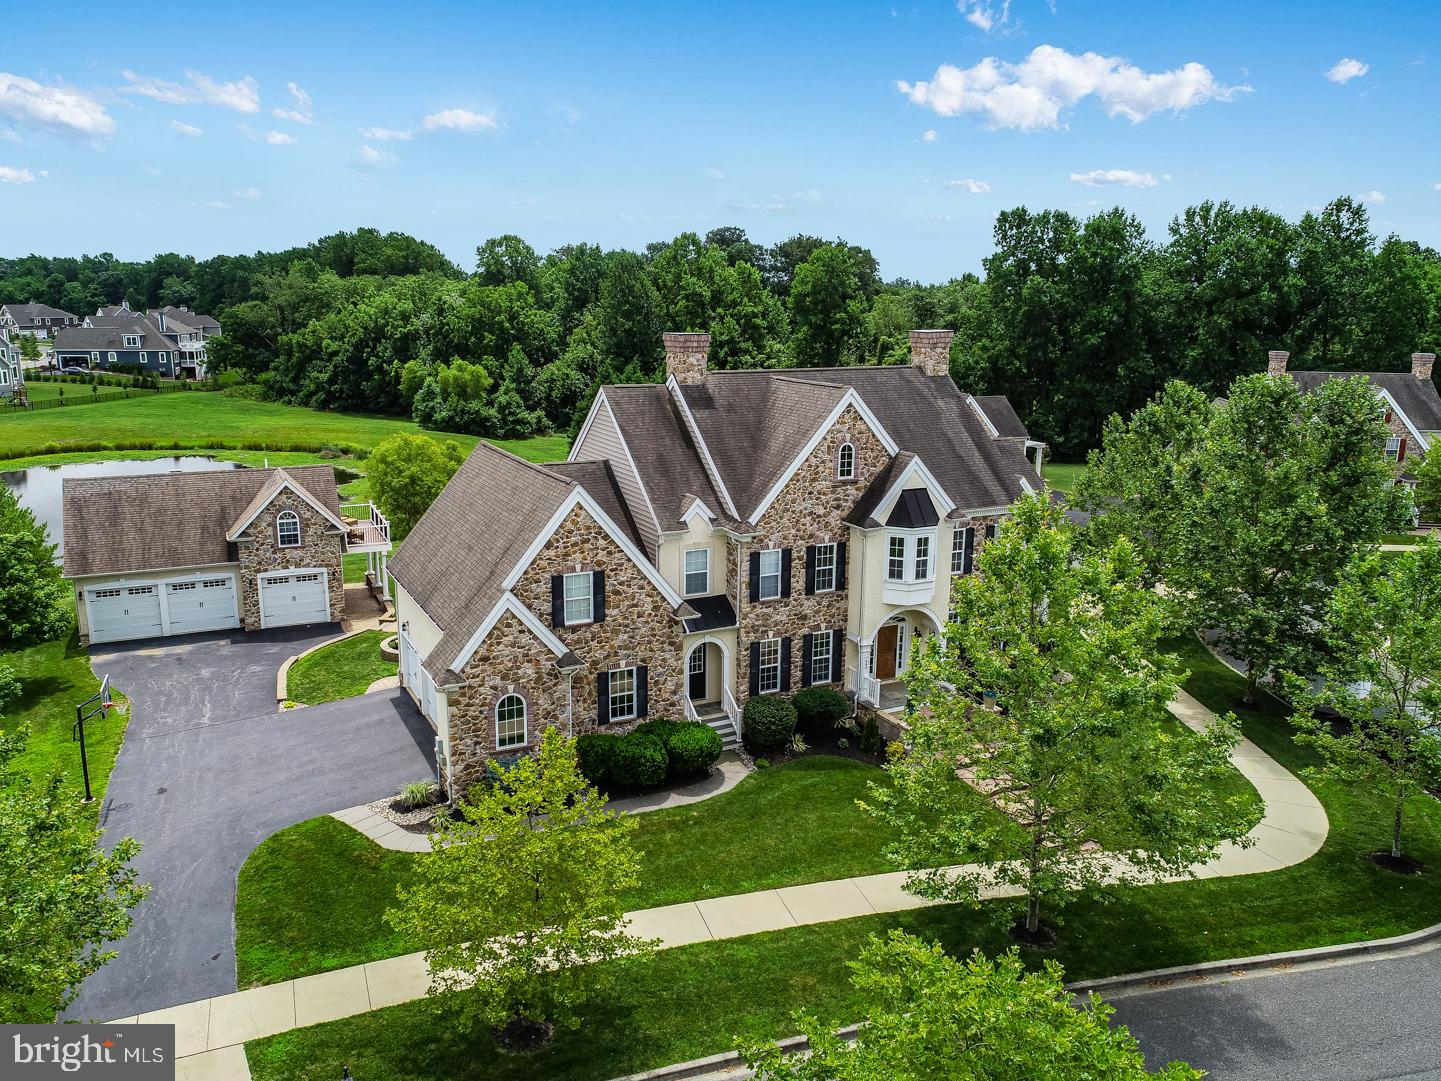 Visit this home virtually: http://www.vht.com/434088227/IDXS - COMING SOON .................Welcome to the most majestic mansion on Spring Hollow Drive in the sought after community of PARKSIDE.  Description is being updated, house will be available in a few weeks.